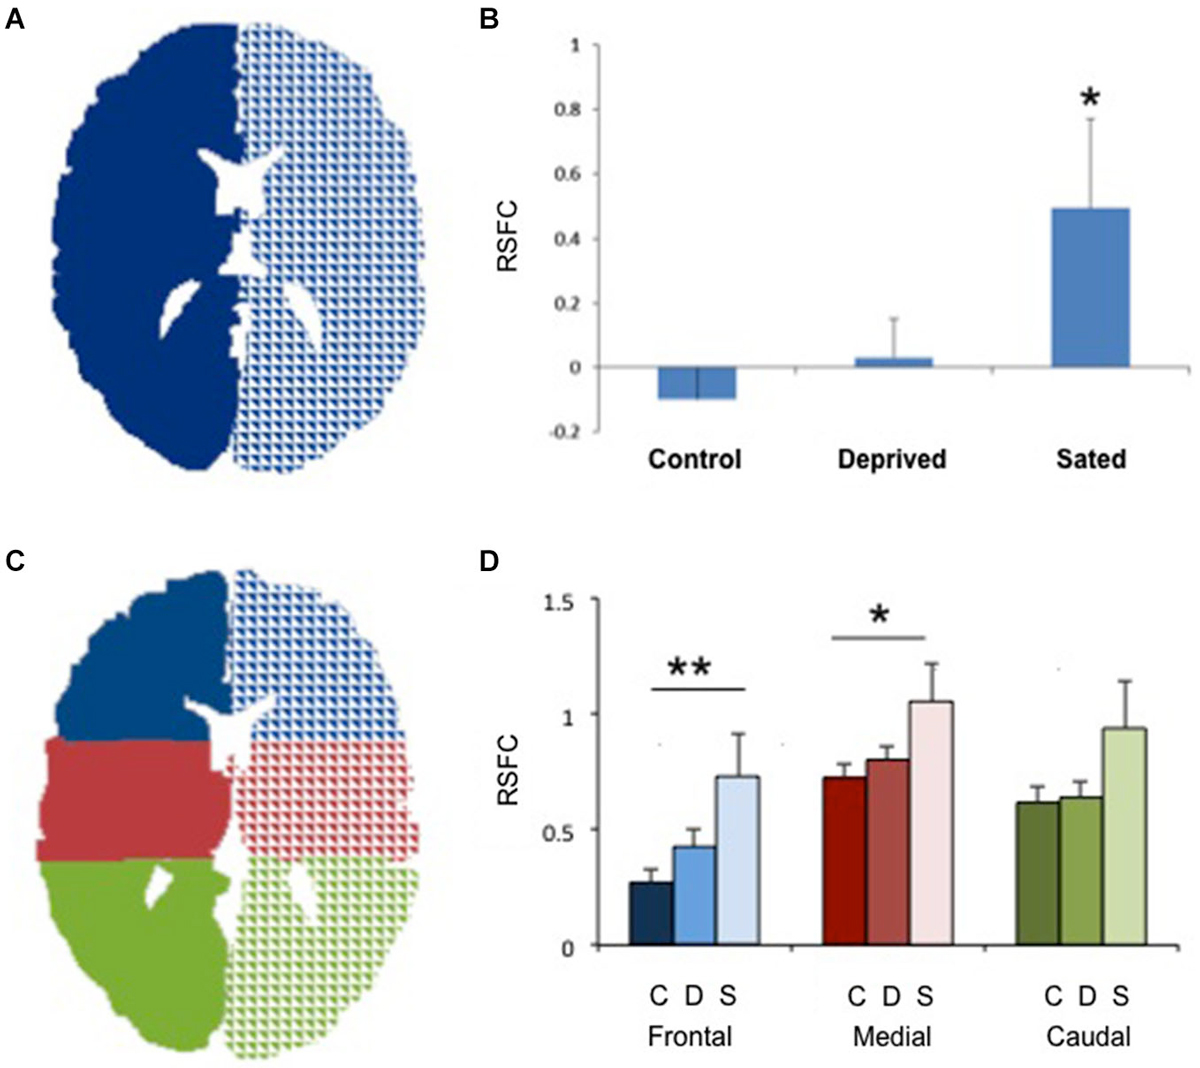 Frontiers | Alterations in interhemispheric functional and